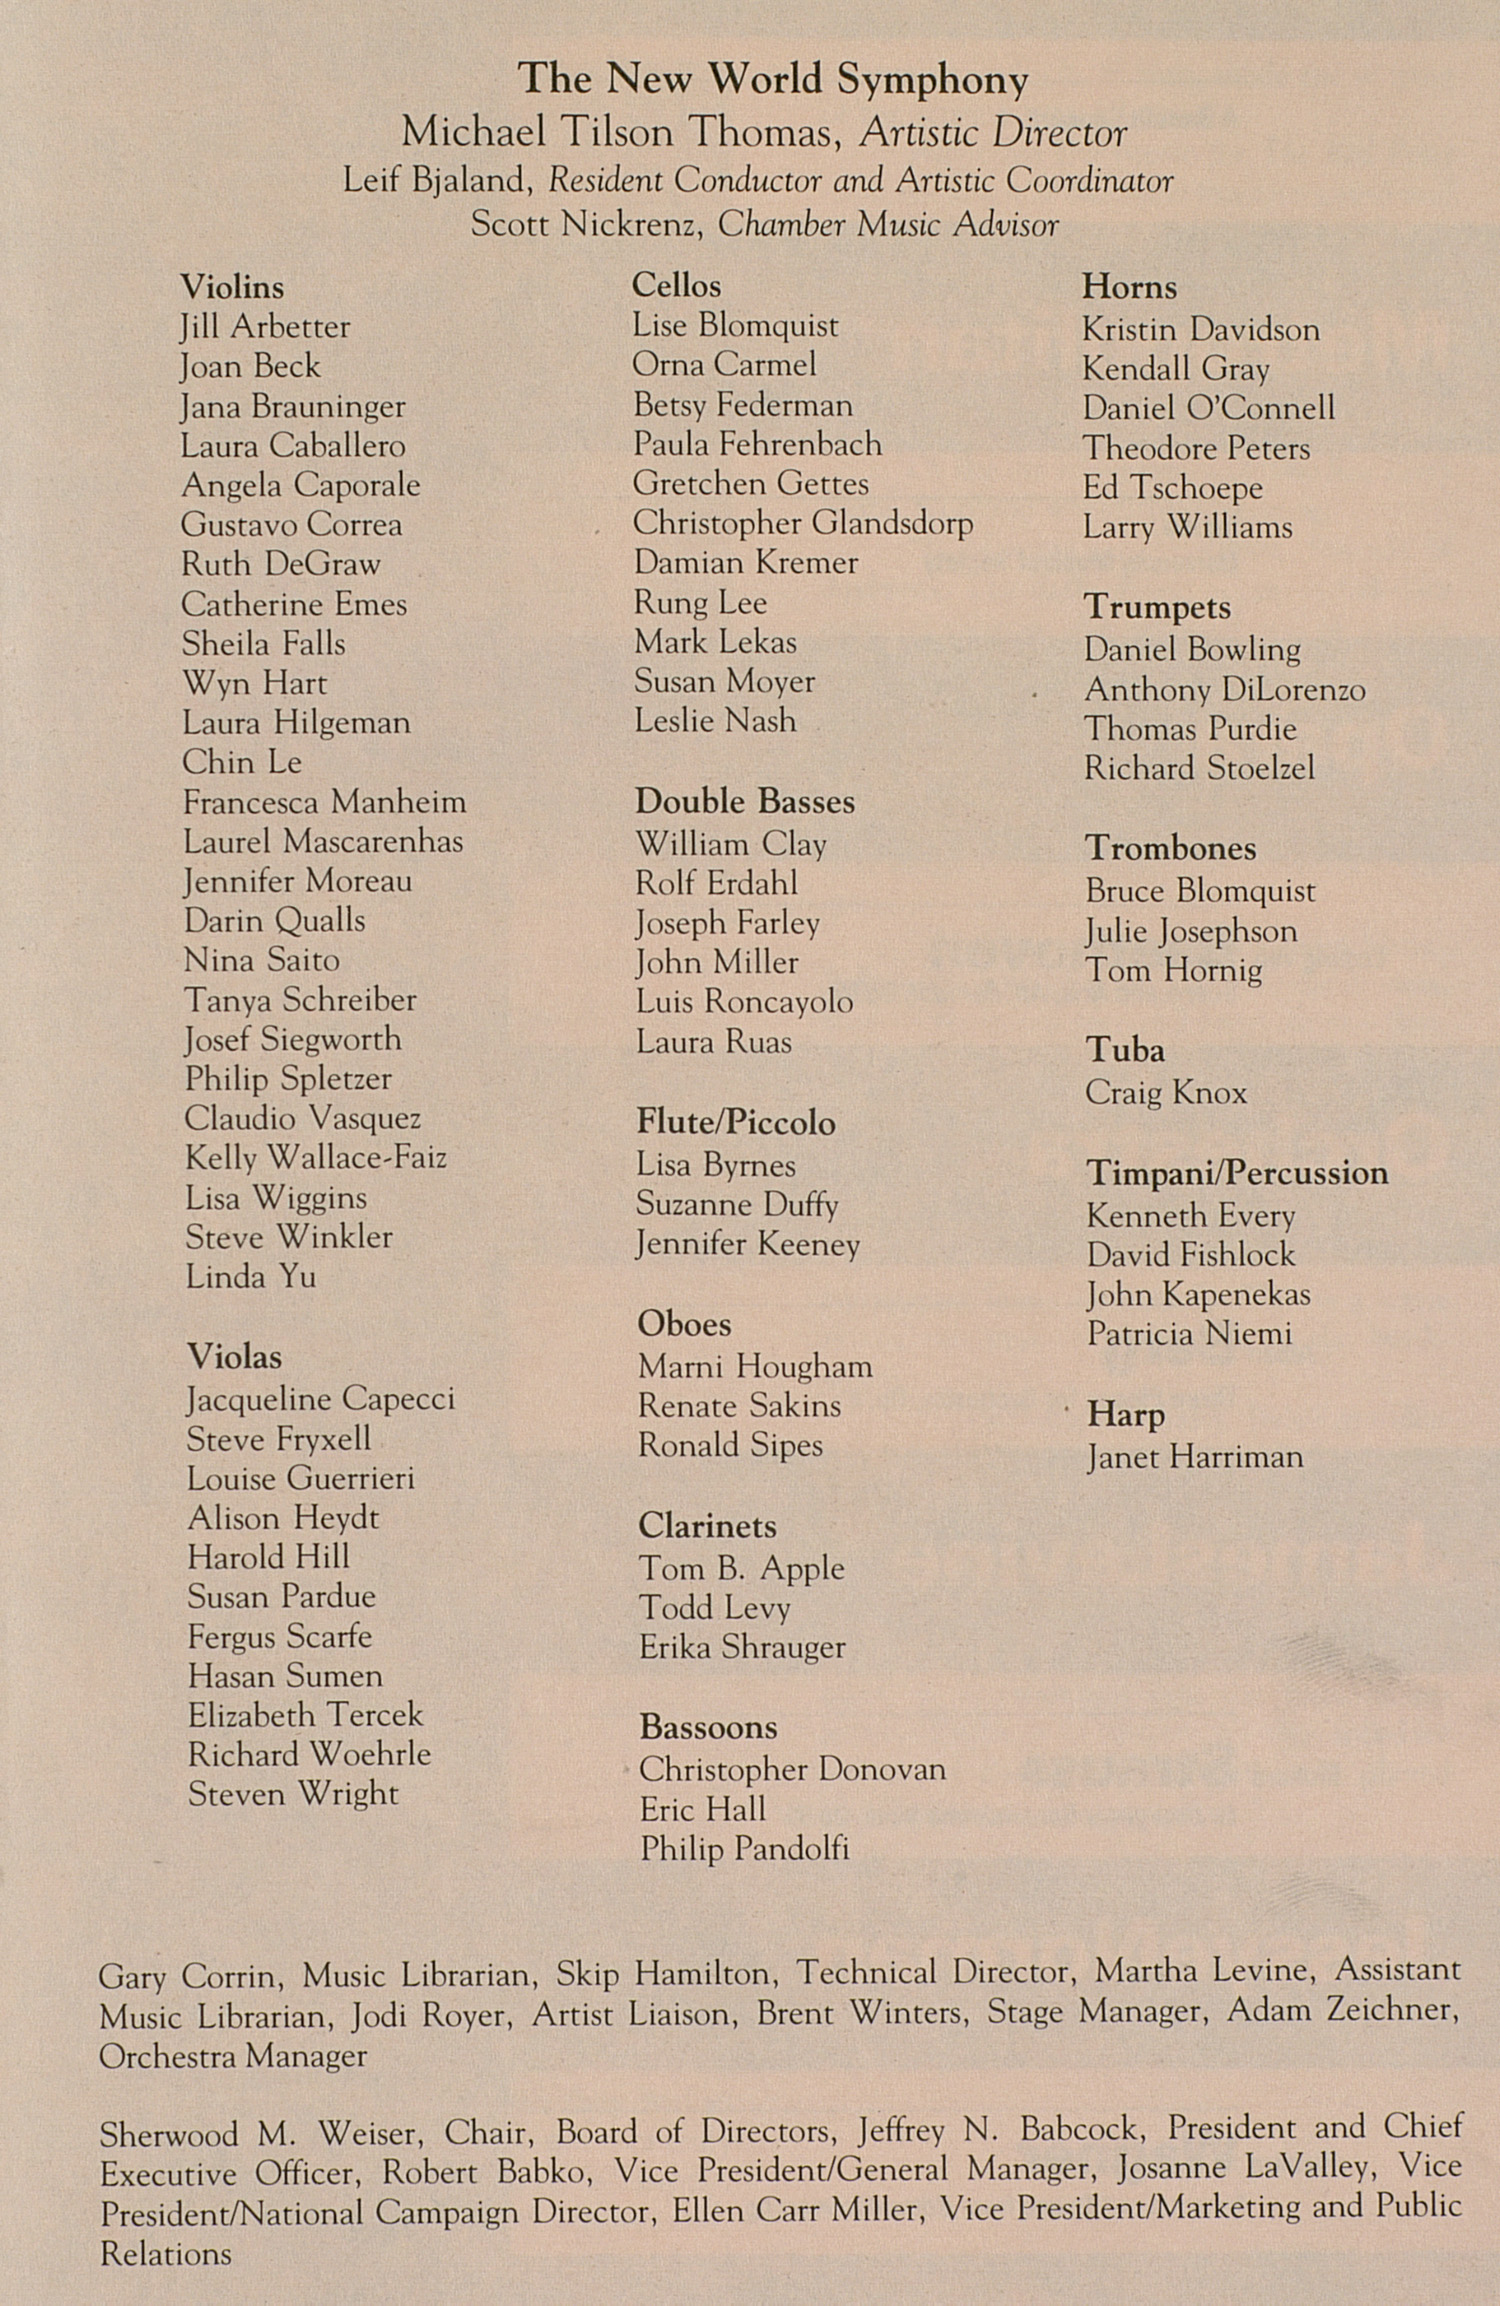 UMS Concert Program, April 3, 1991: The New World Symphony -- America's National Training Orchestra image